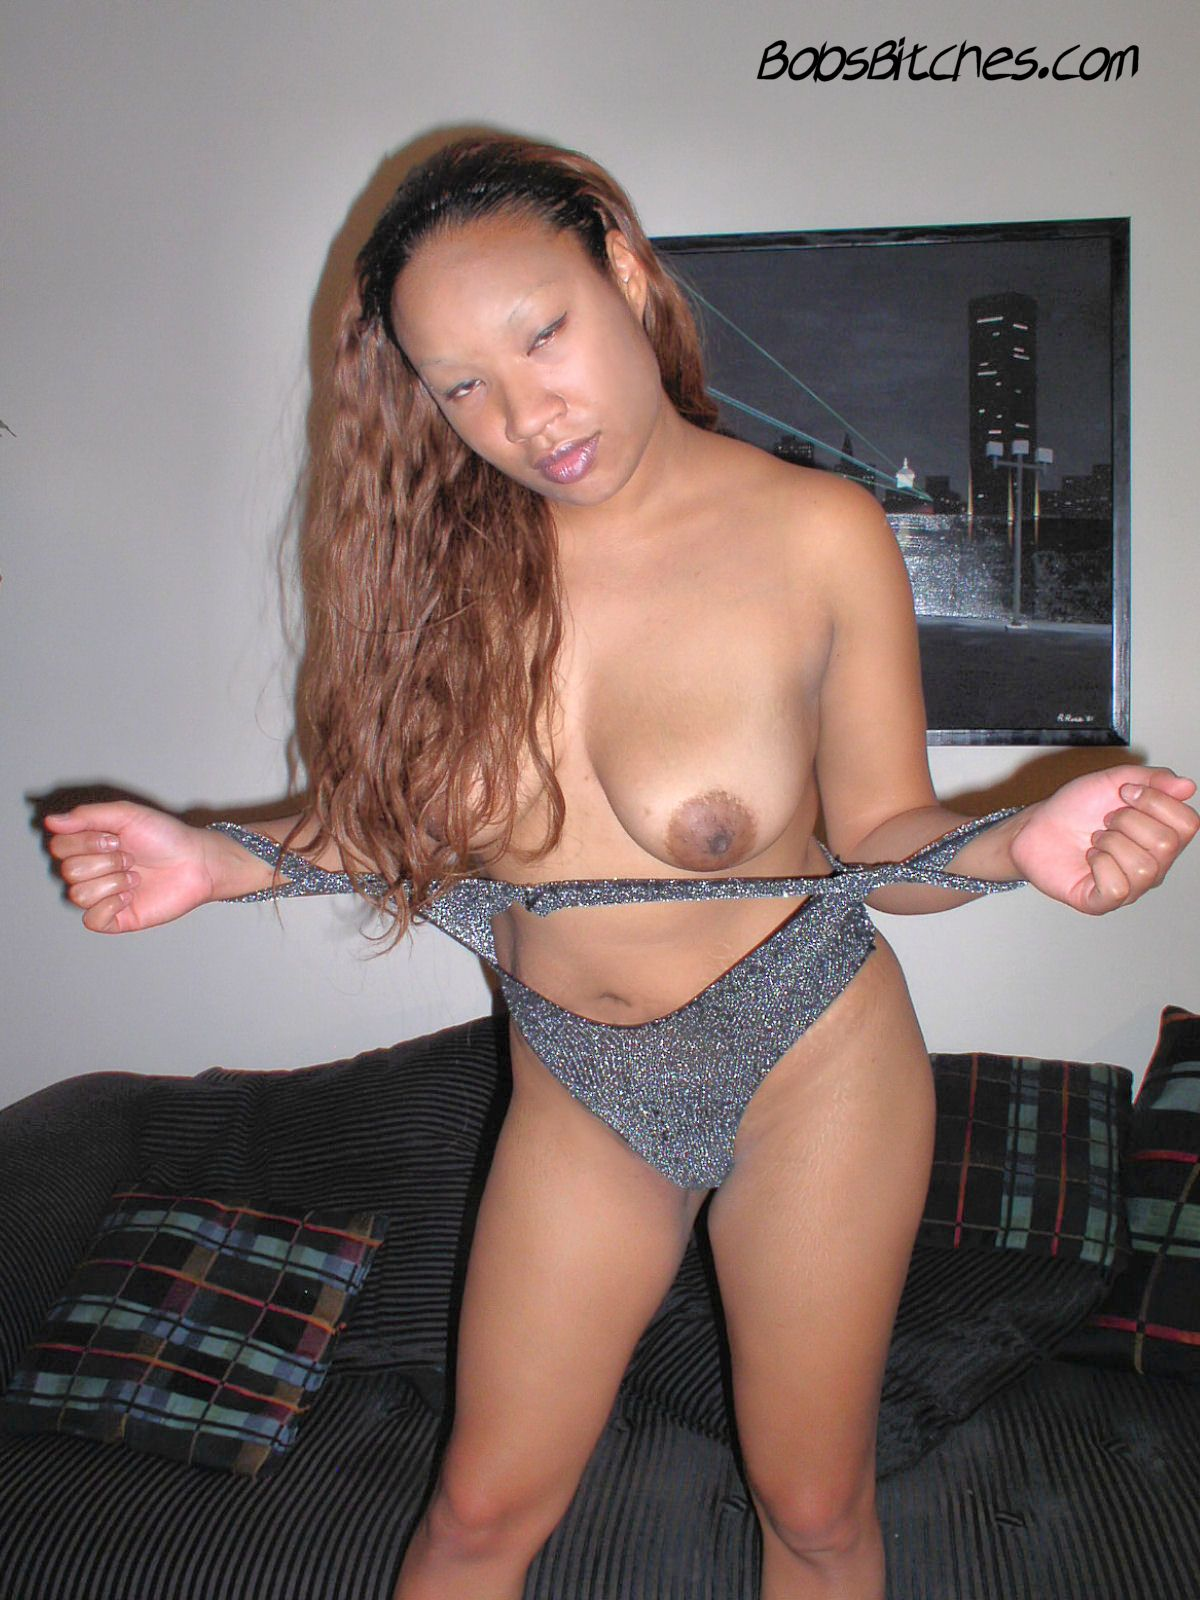 Exotic mixed ebony and asian beauty, Mia, exposes her natural boobs.